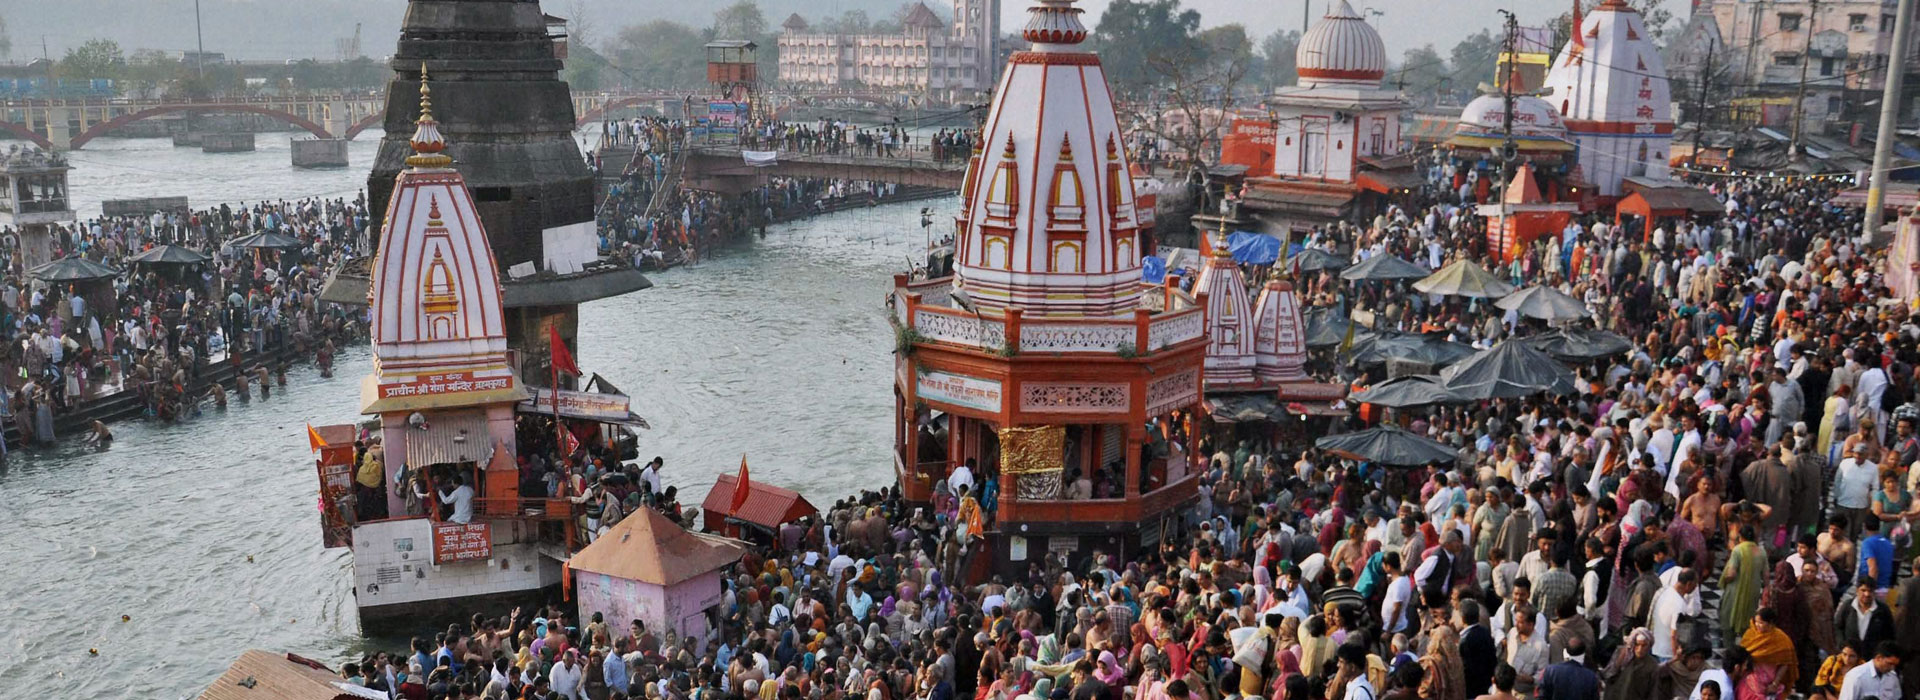 Mahashivratri in India near the Ganges